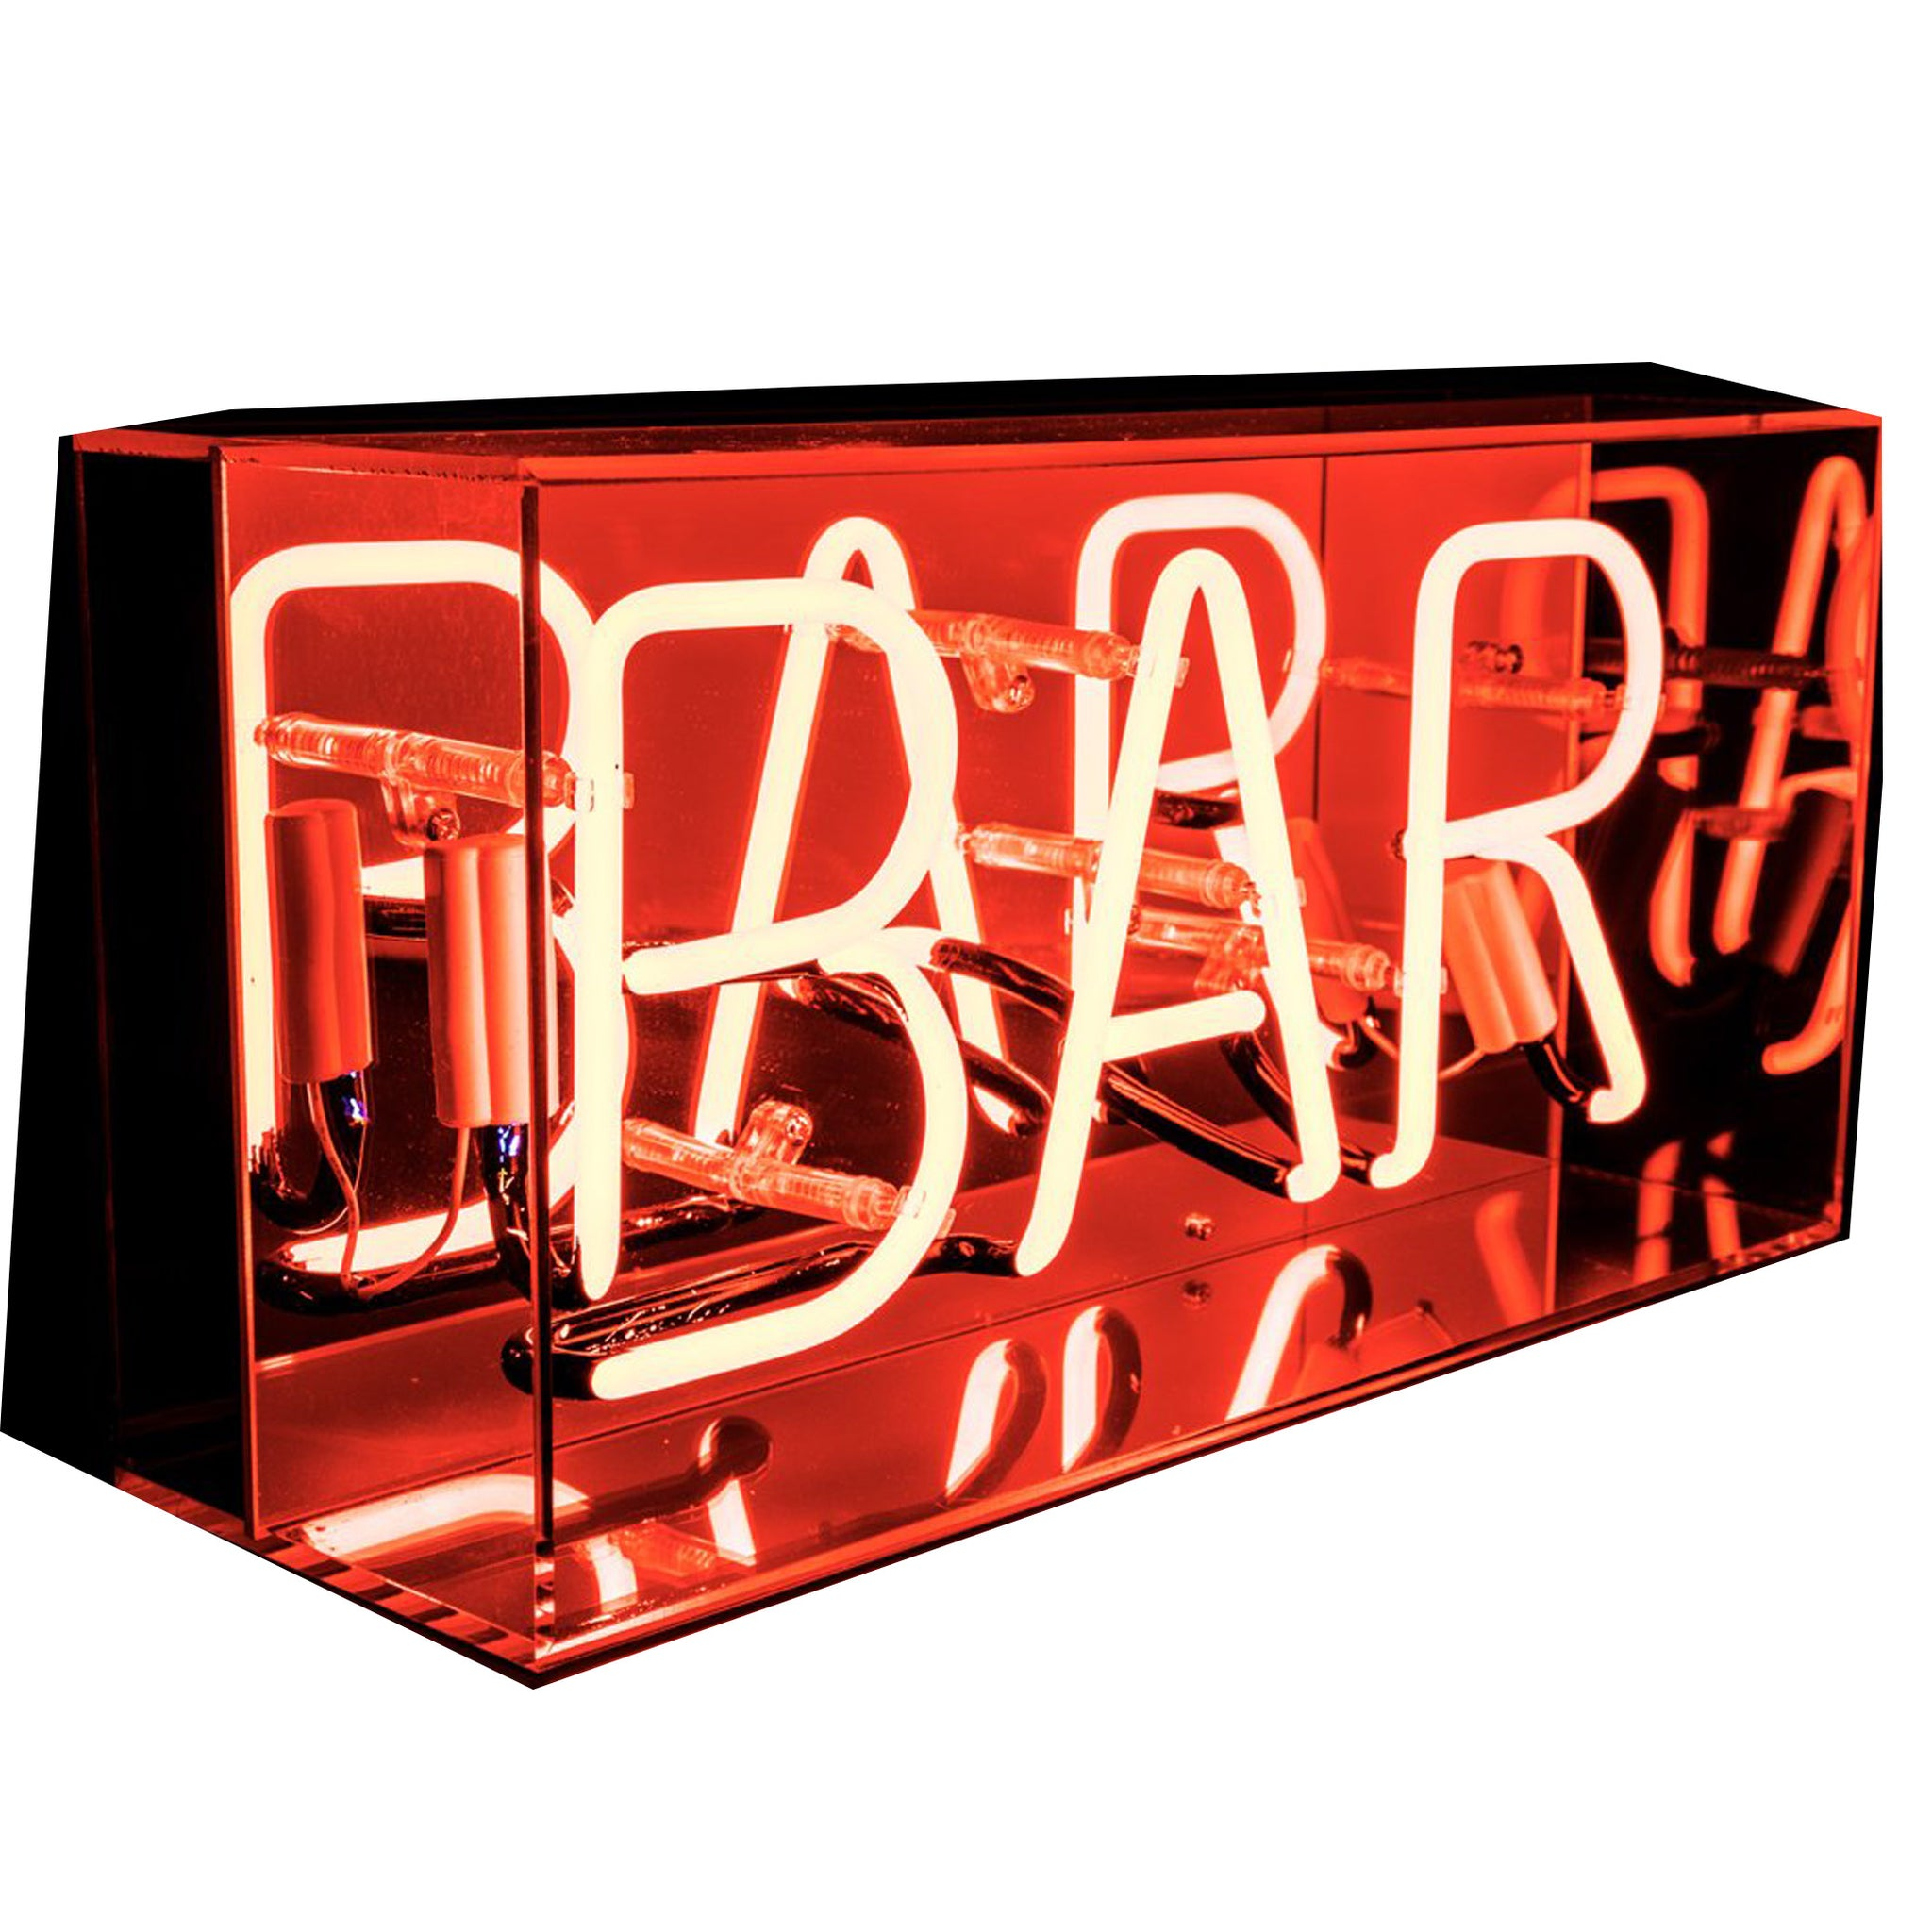 'Bar' Neon Red Acrylic Box